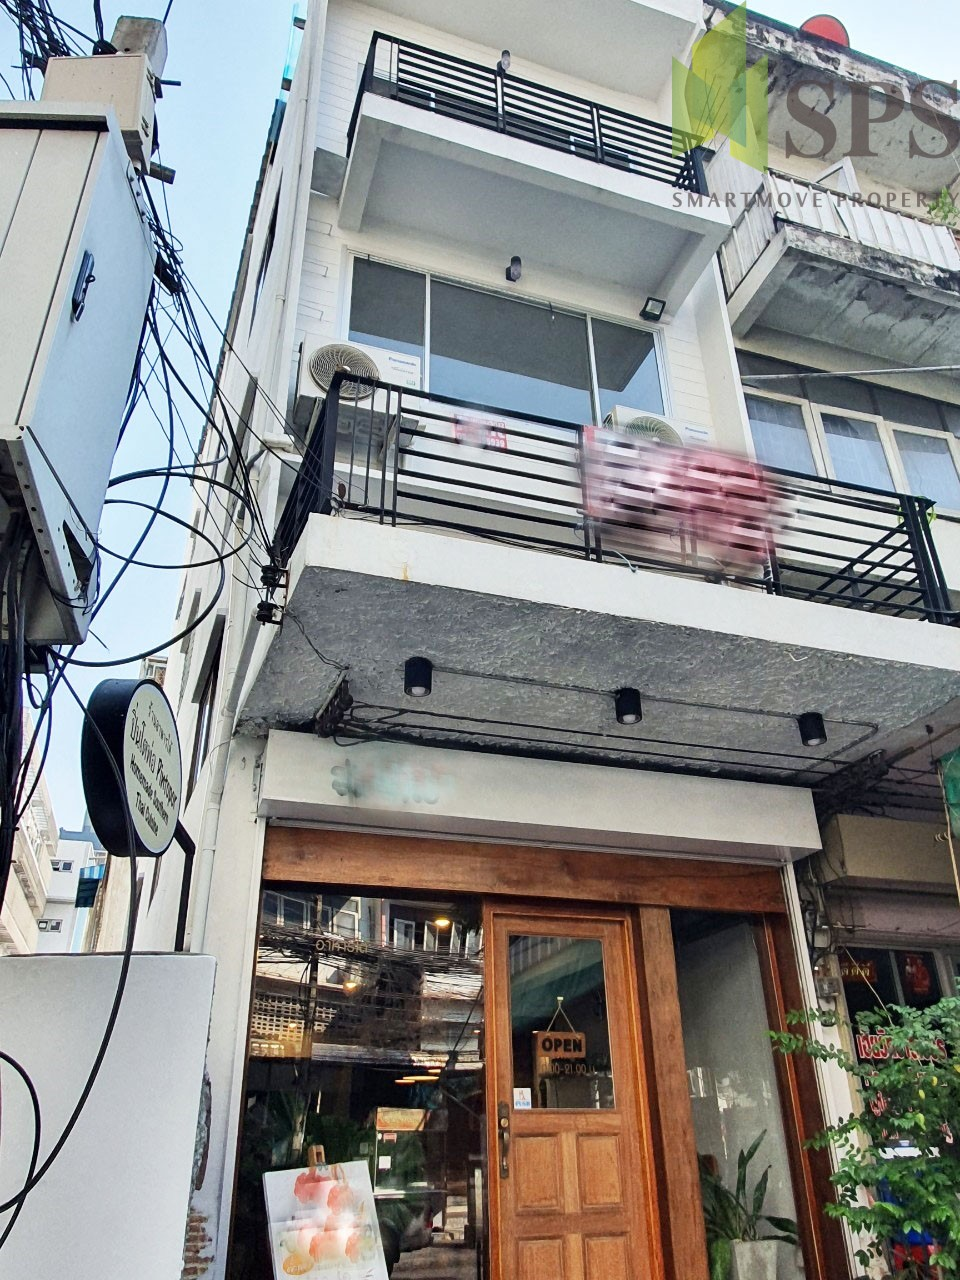 For Rent Shophouse near BTS Punnawithi ตึกแถว 1 คูหาให้เช่าใกล้บีทีเอสปุณวิถี ( SPSPE315)